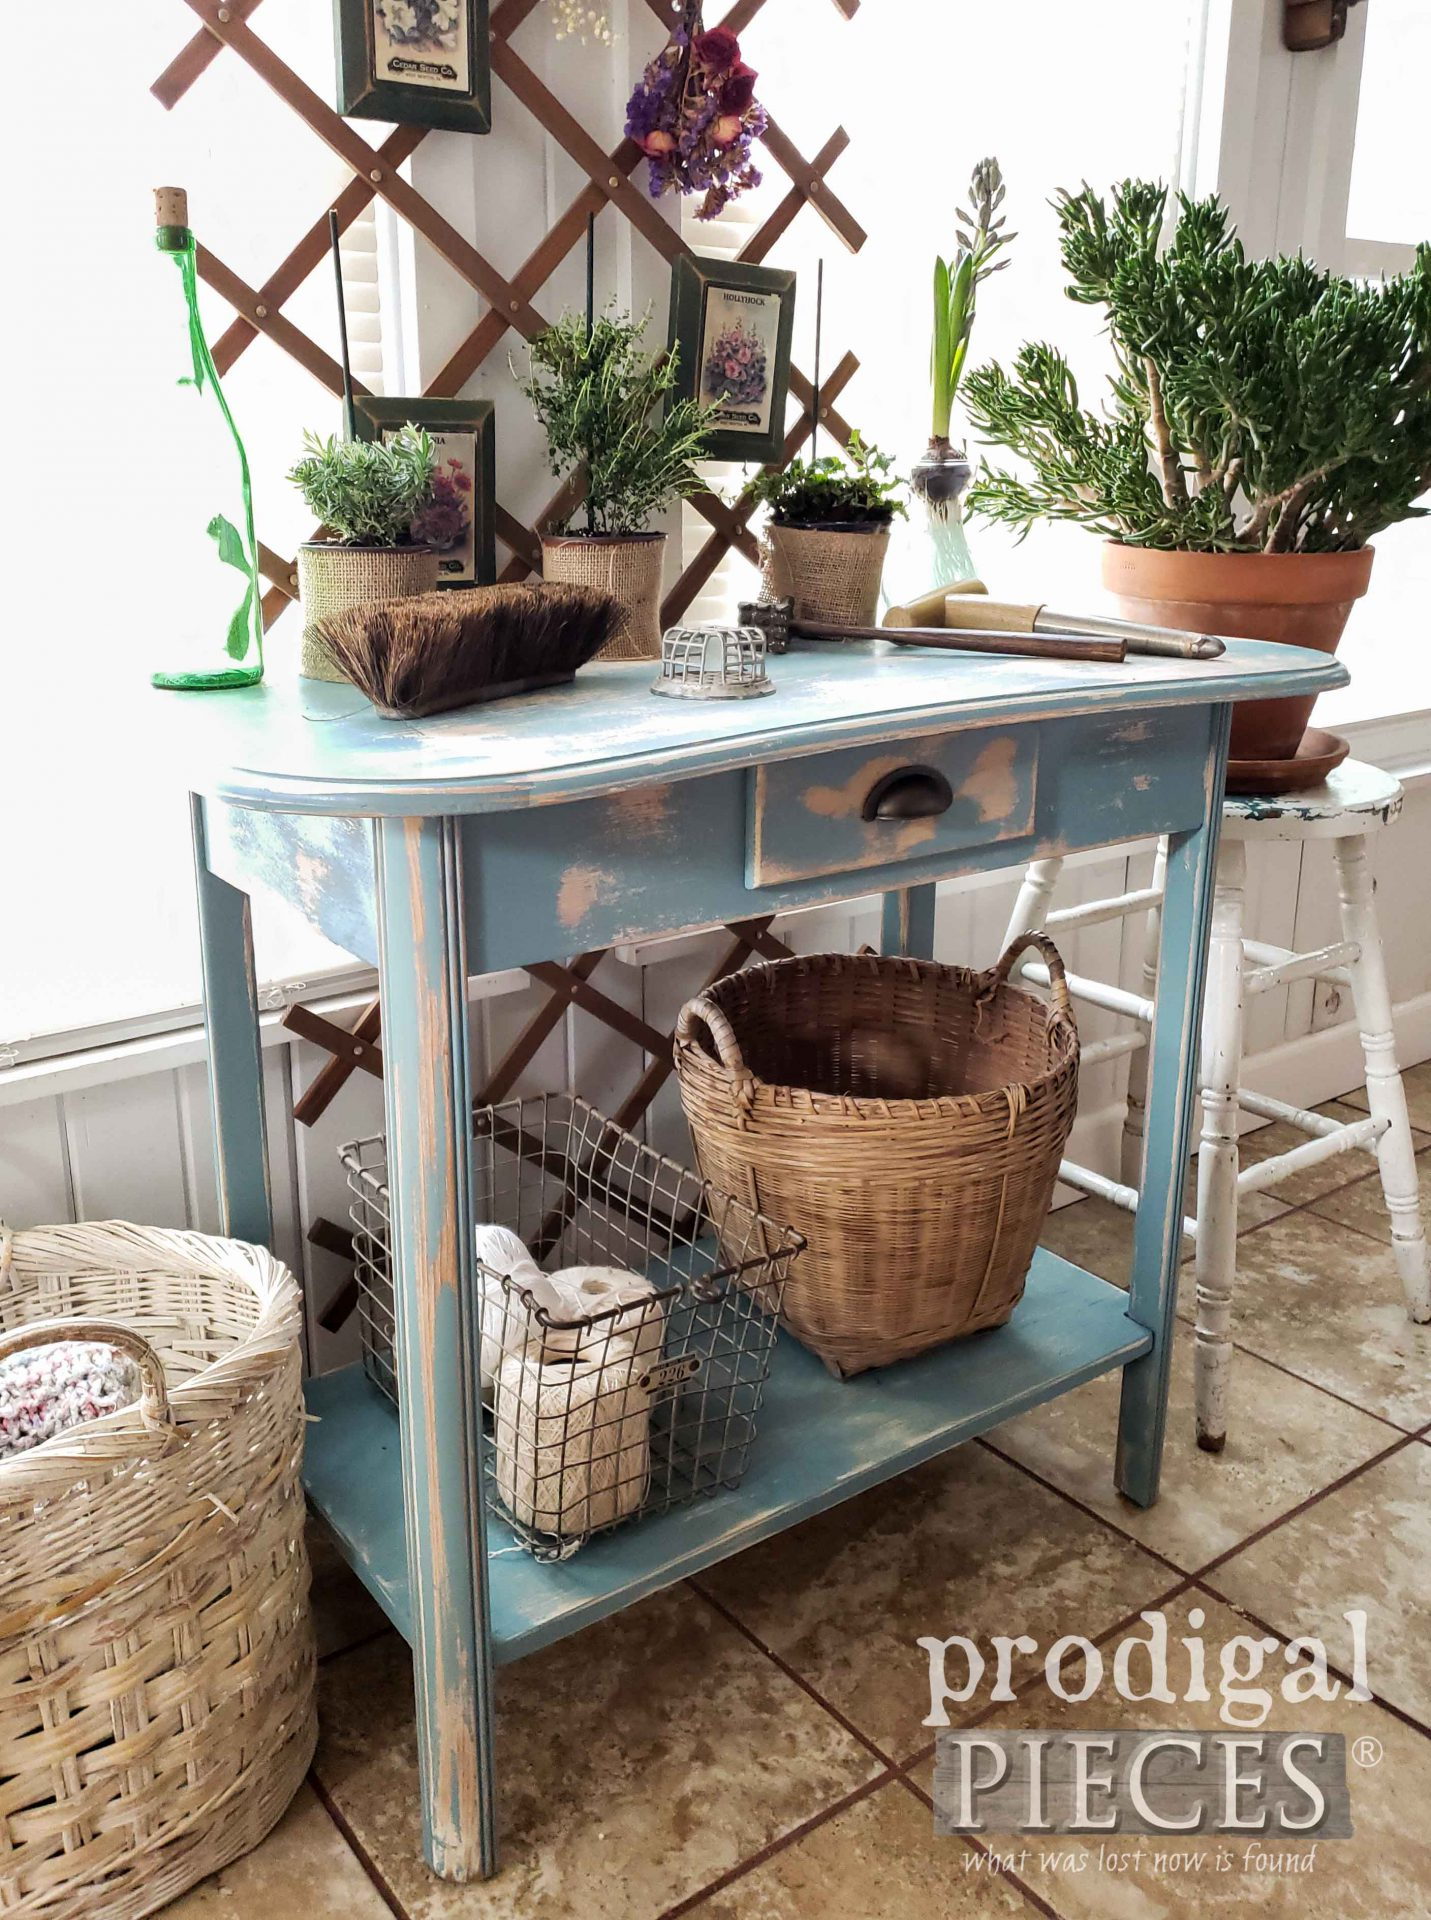 Chippy Blue Farmhouse Console Table from Repurposed Desk by Larissa of Prodigal Pieces | #prodigalpieces #diy #farmhouse #furniture #spring #home #homedecor